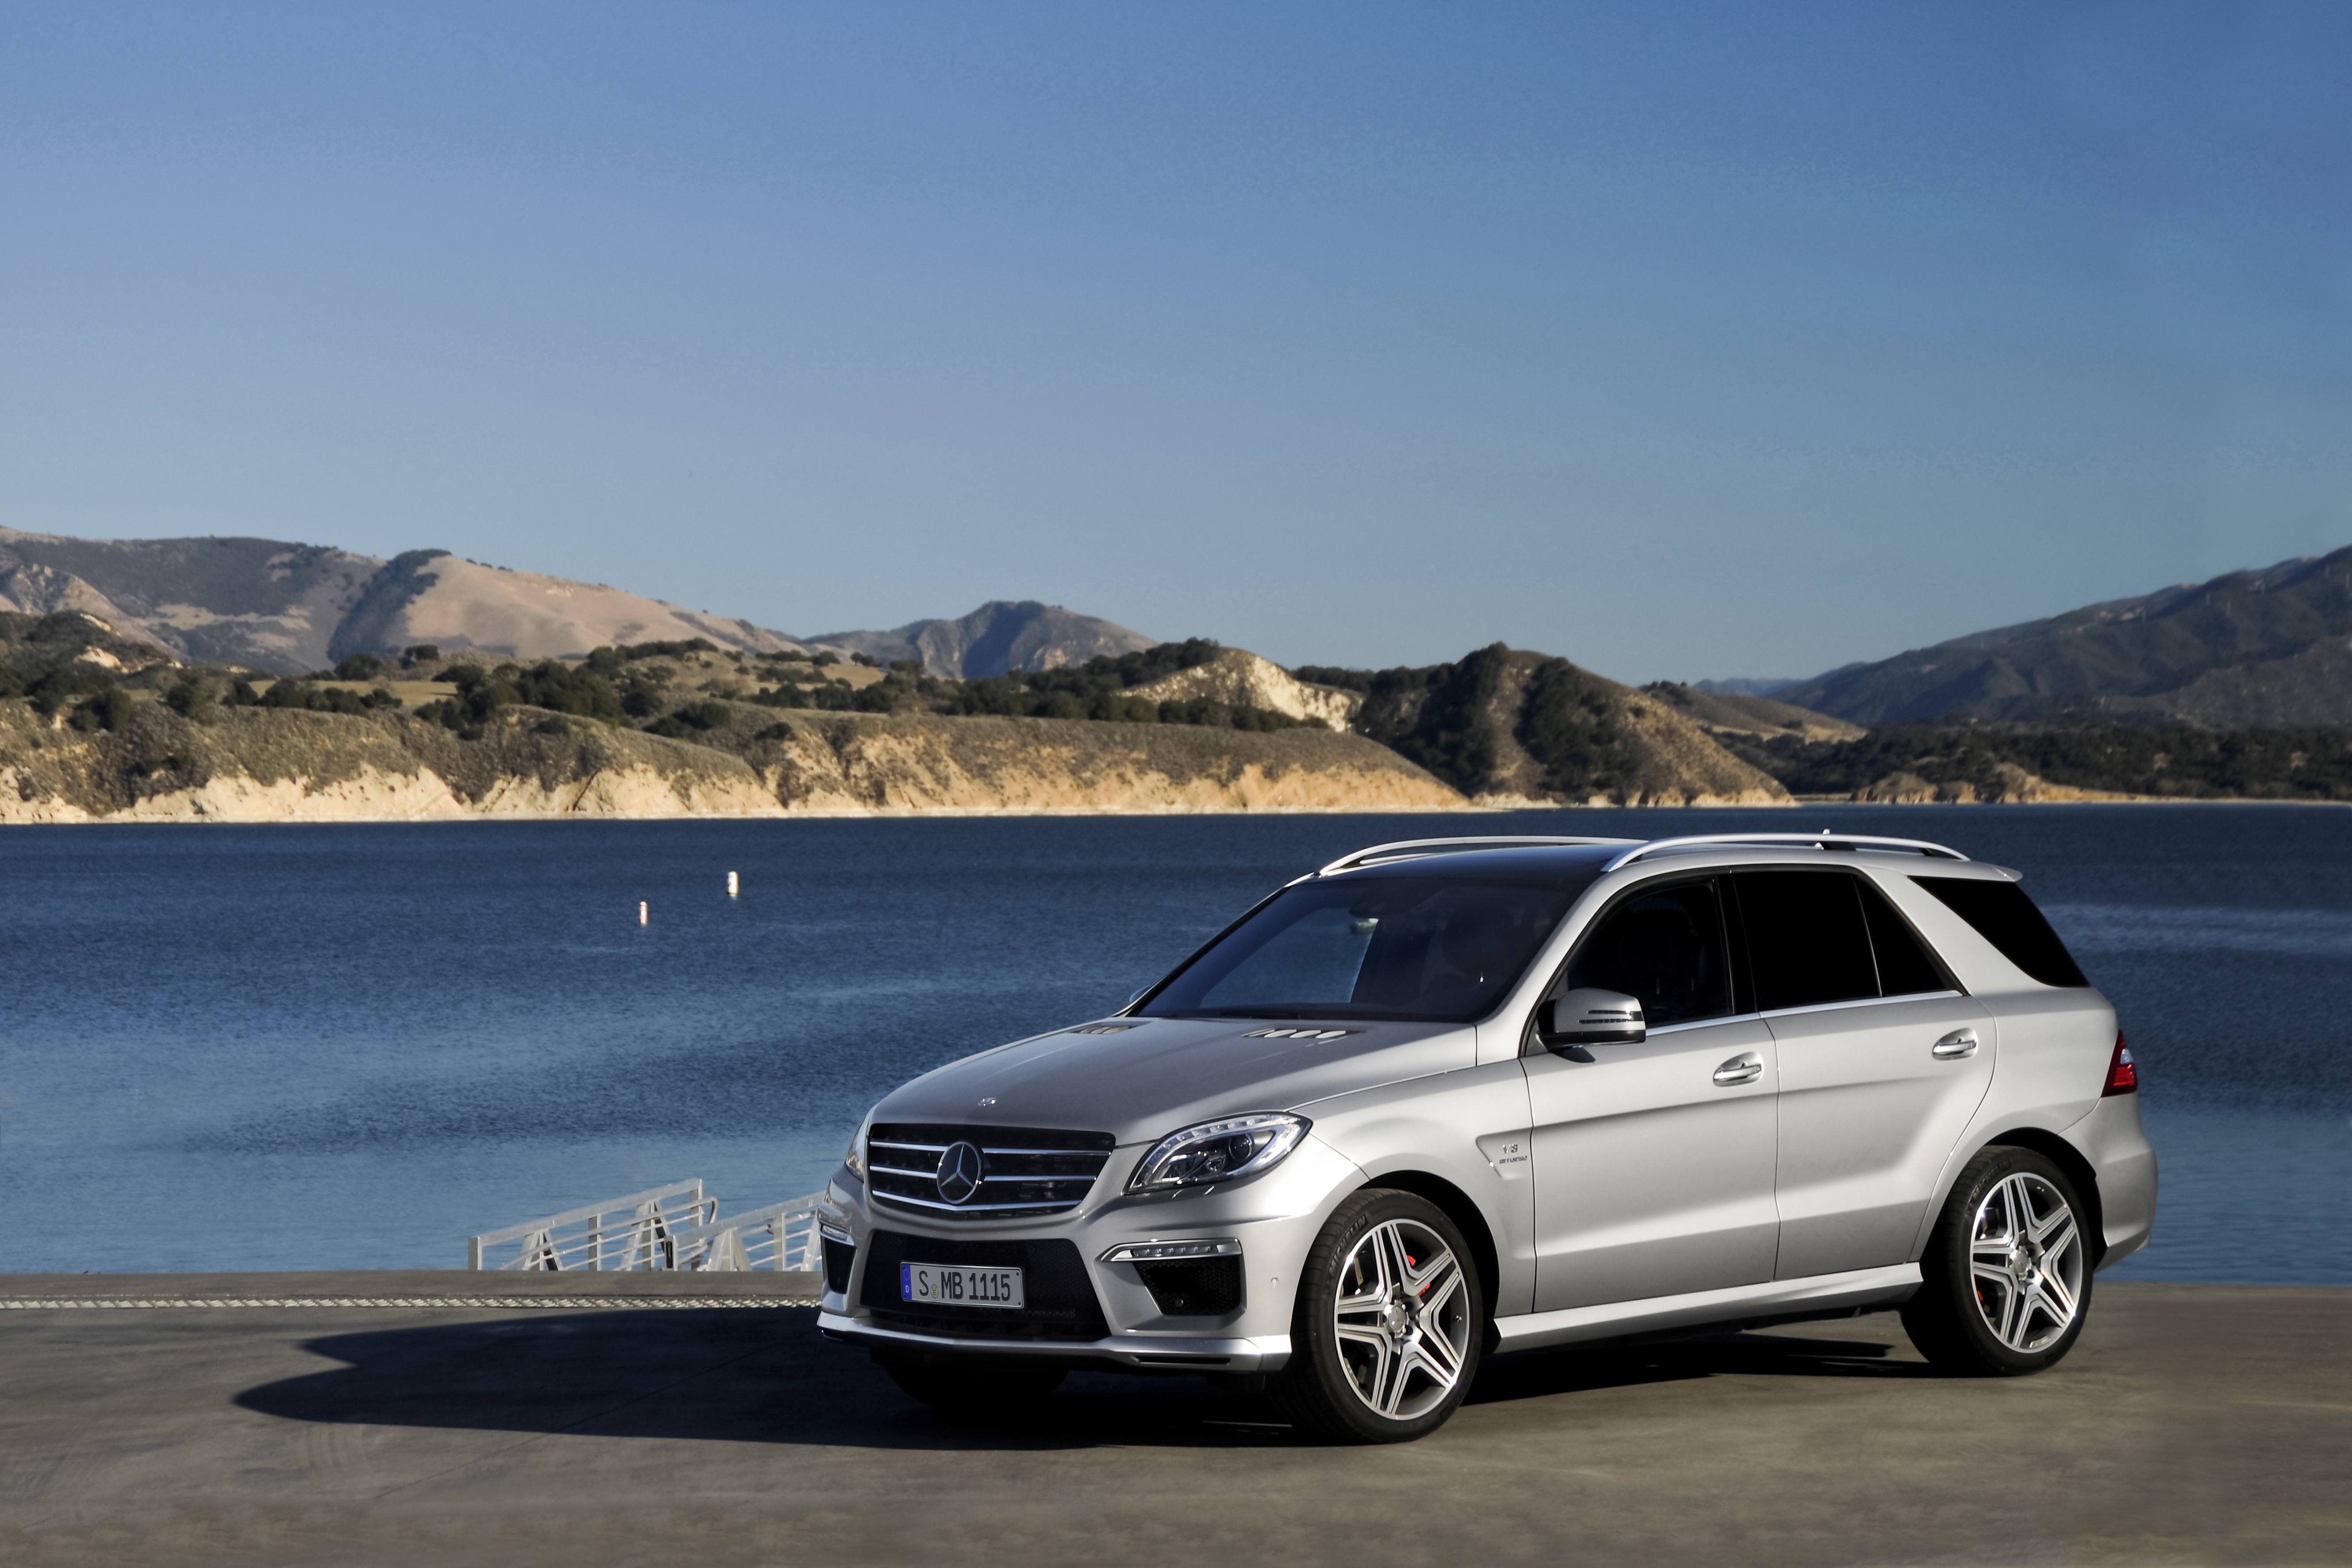 mercedes-benz wallpaper (Mercedes-Benz M-Class)